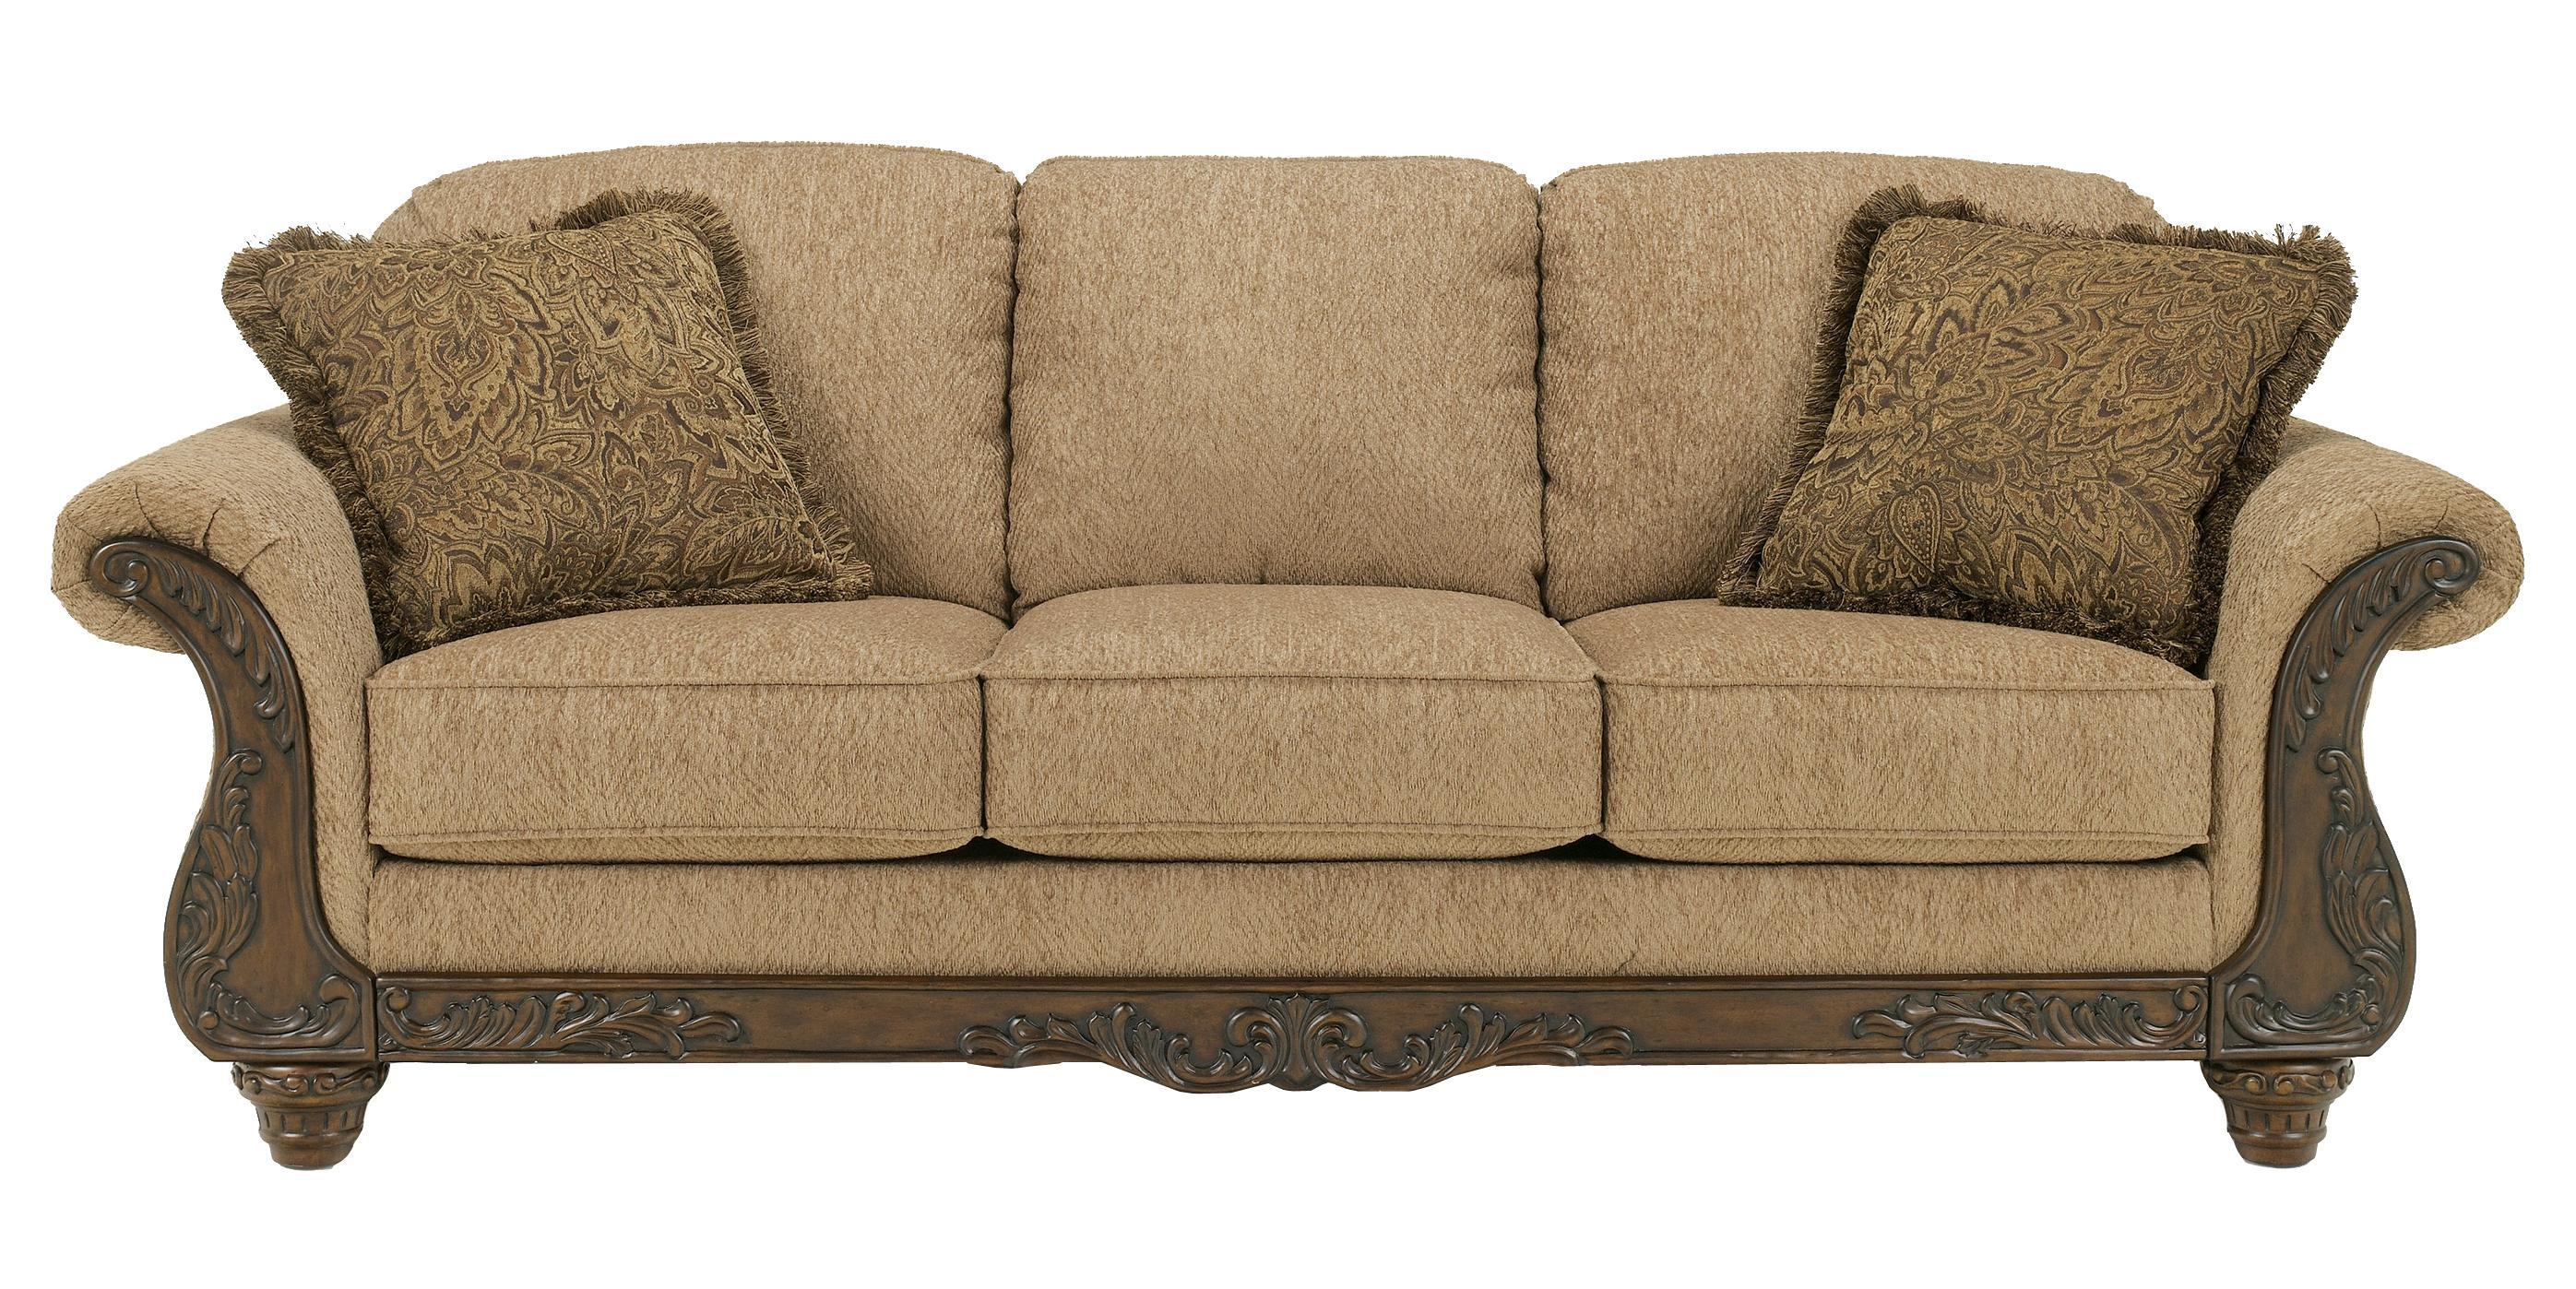 Signature Design by Ashley Cambridge - Amber Sofa - Item Number: 3940138